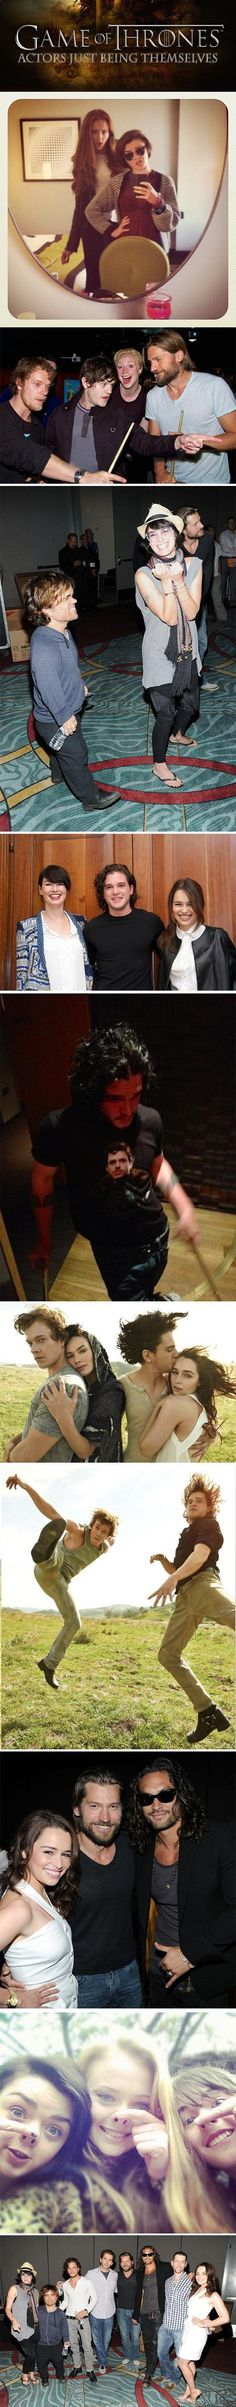 Game of Thrones actors just being themselves.  Can I be friends with you too?